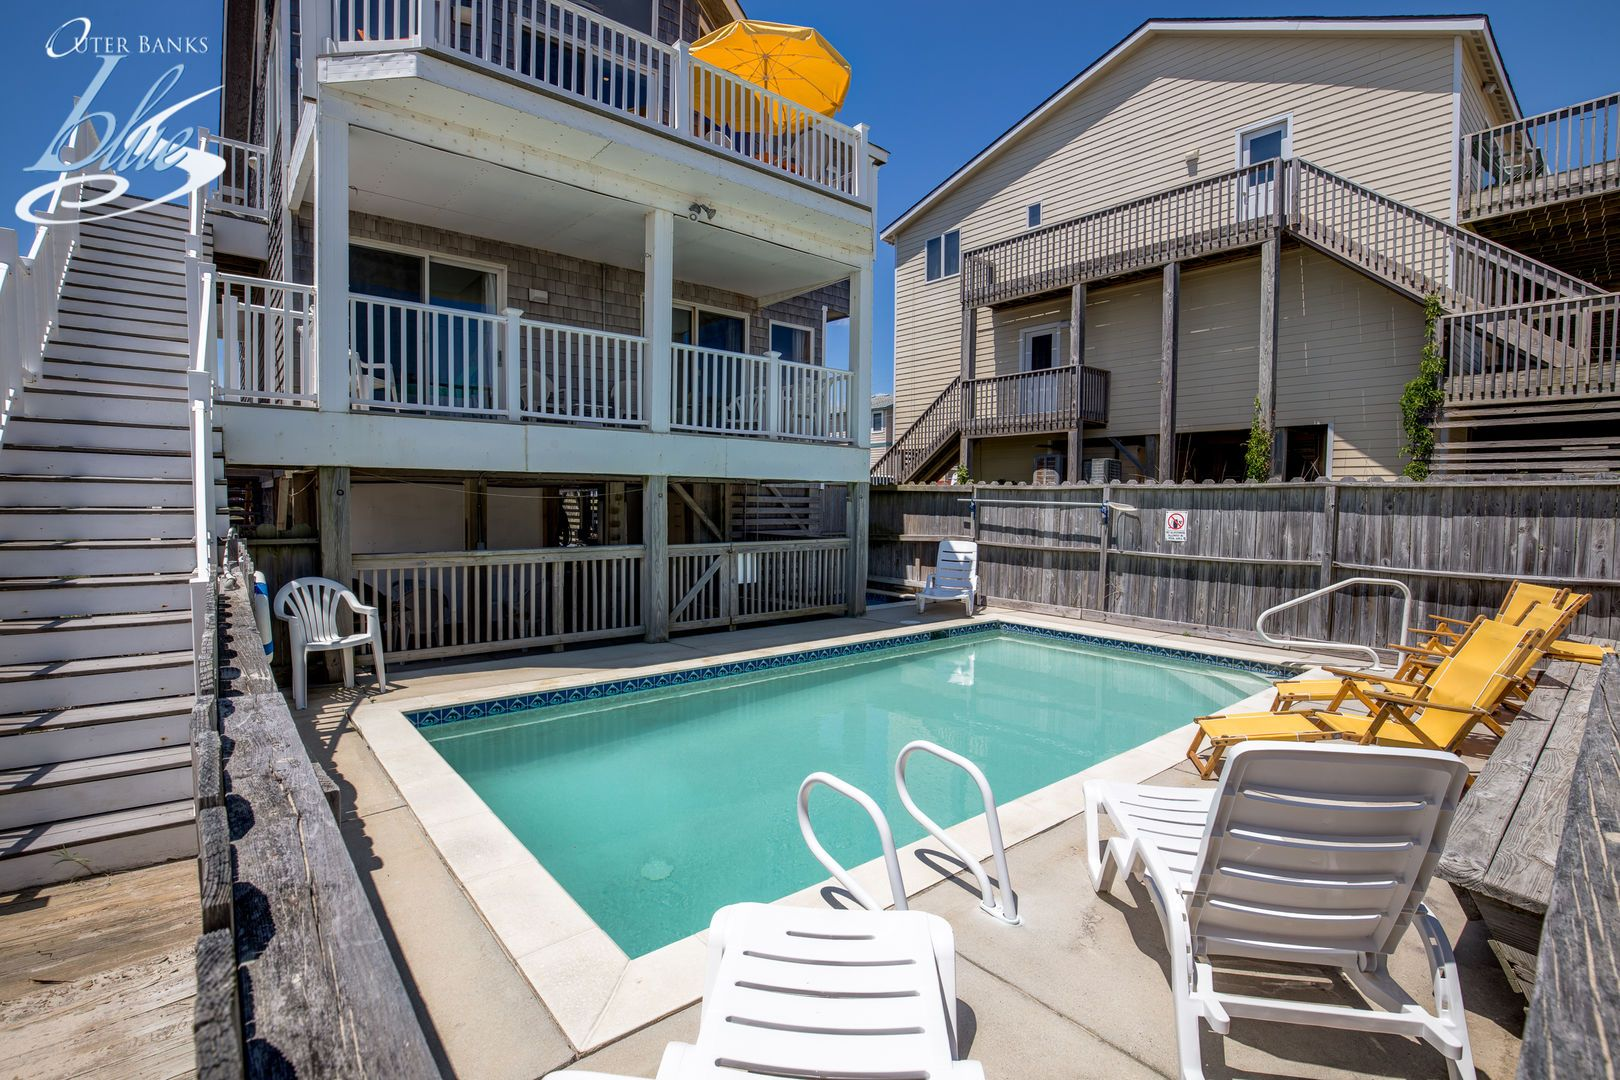 Footloose nags head outer banks blue vacation rental